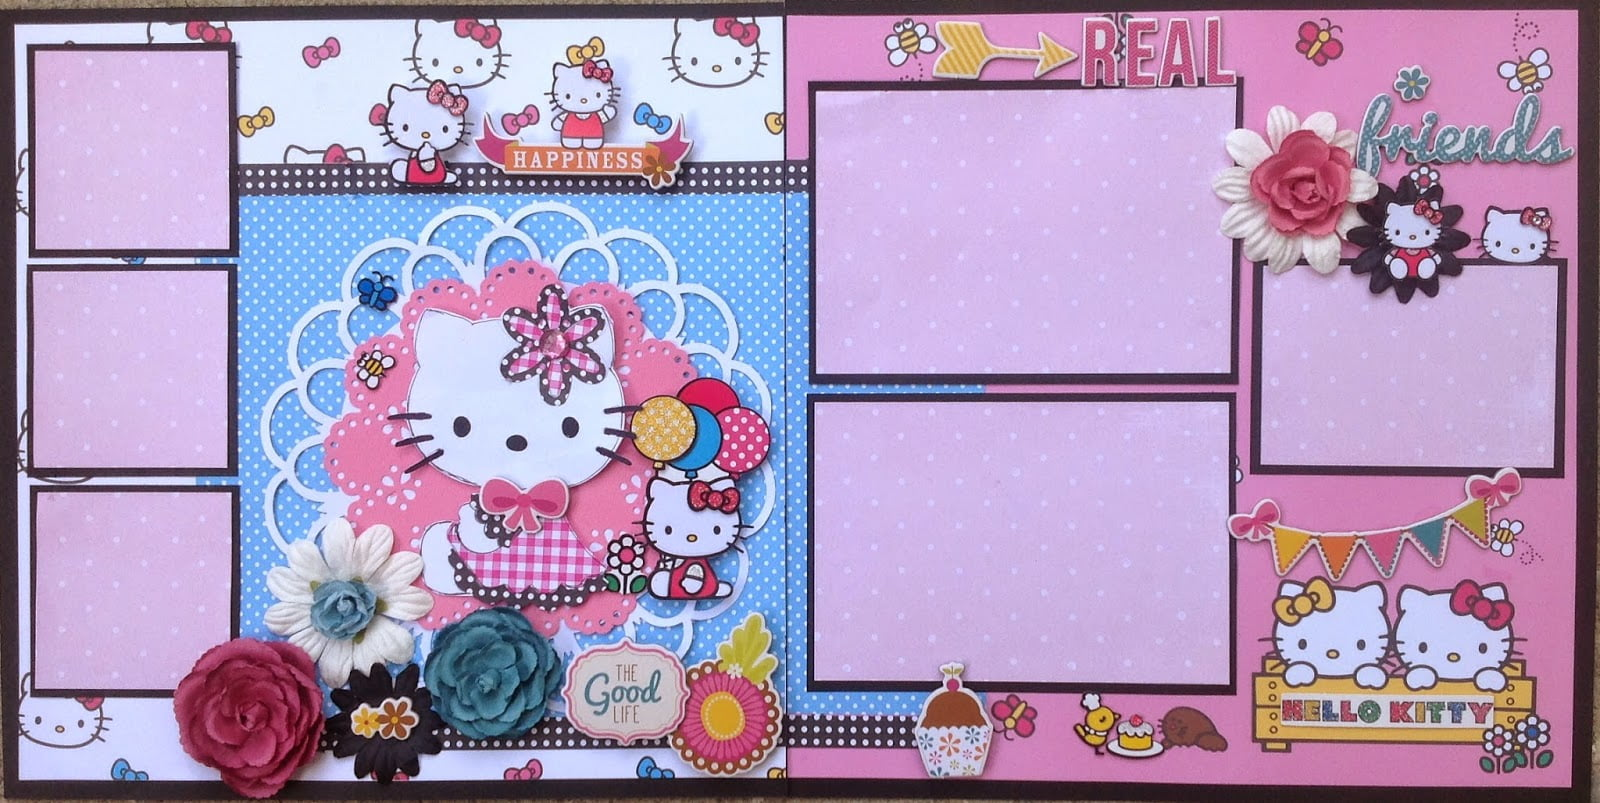 Amazing Grace Paper Crafts  Hello Kitty